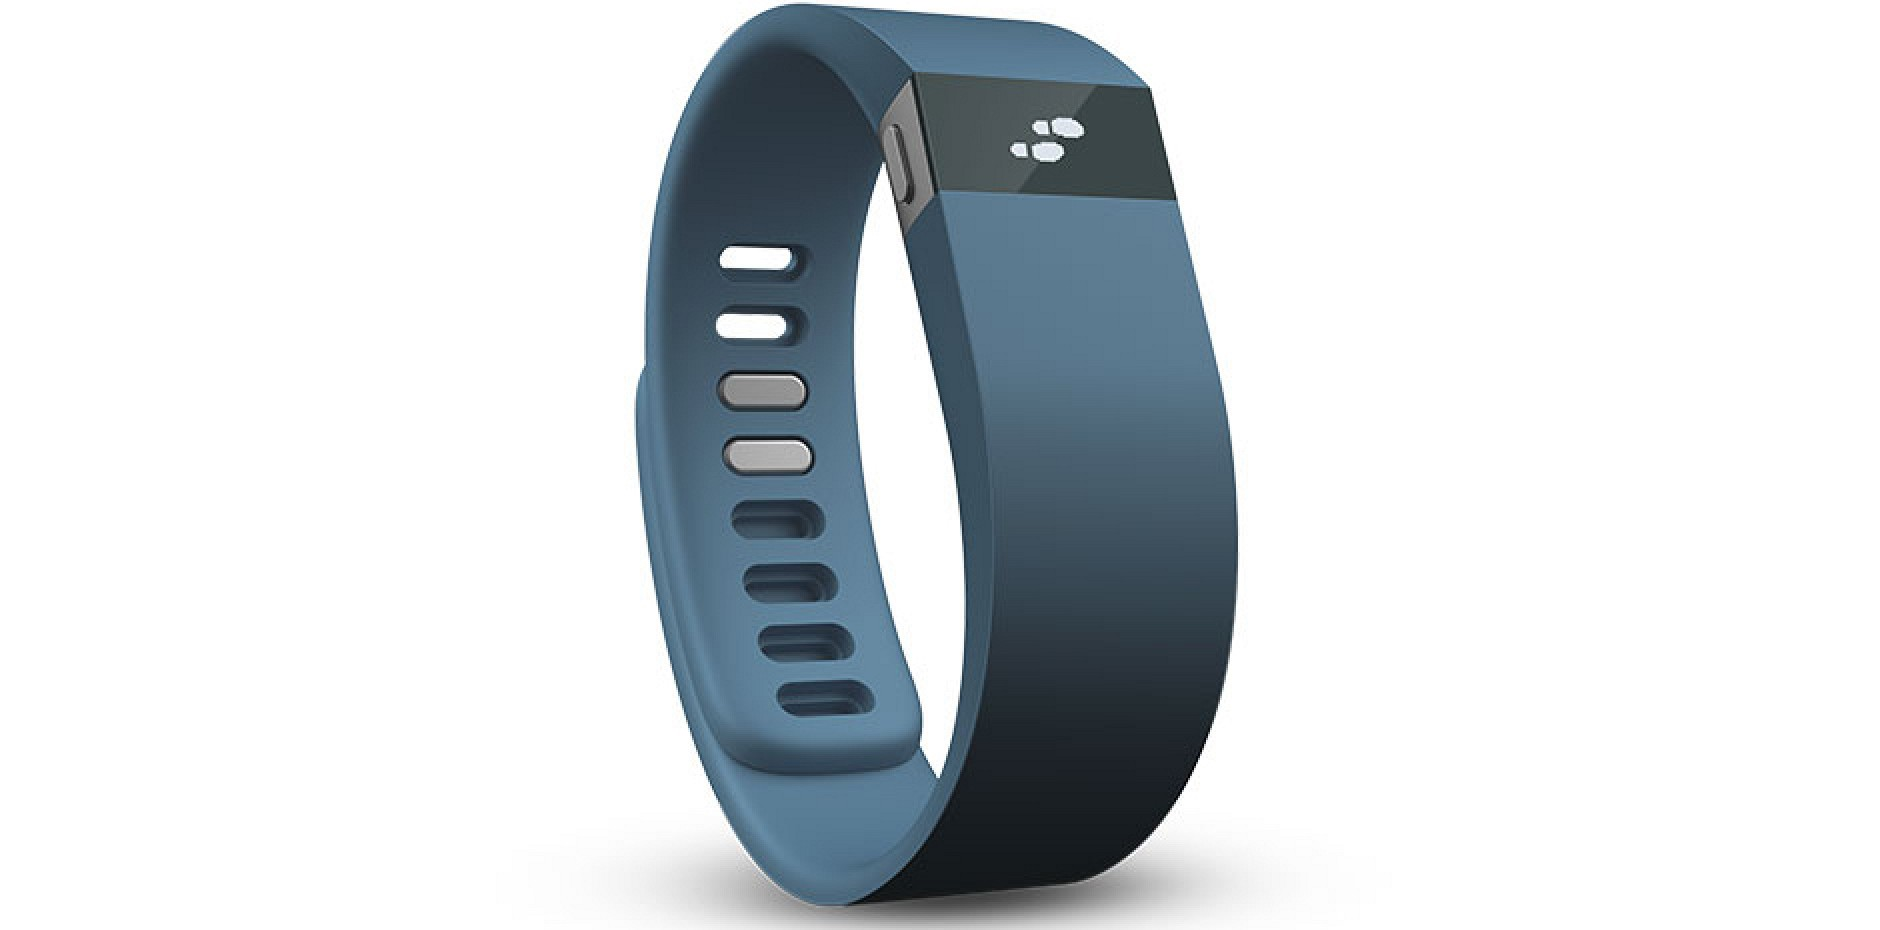 Car Tracking Device >> Fitbit Force Activity Tracking Wristband Launches with Built-In Altimeter, Phone Notifications ...